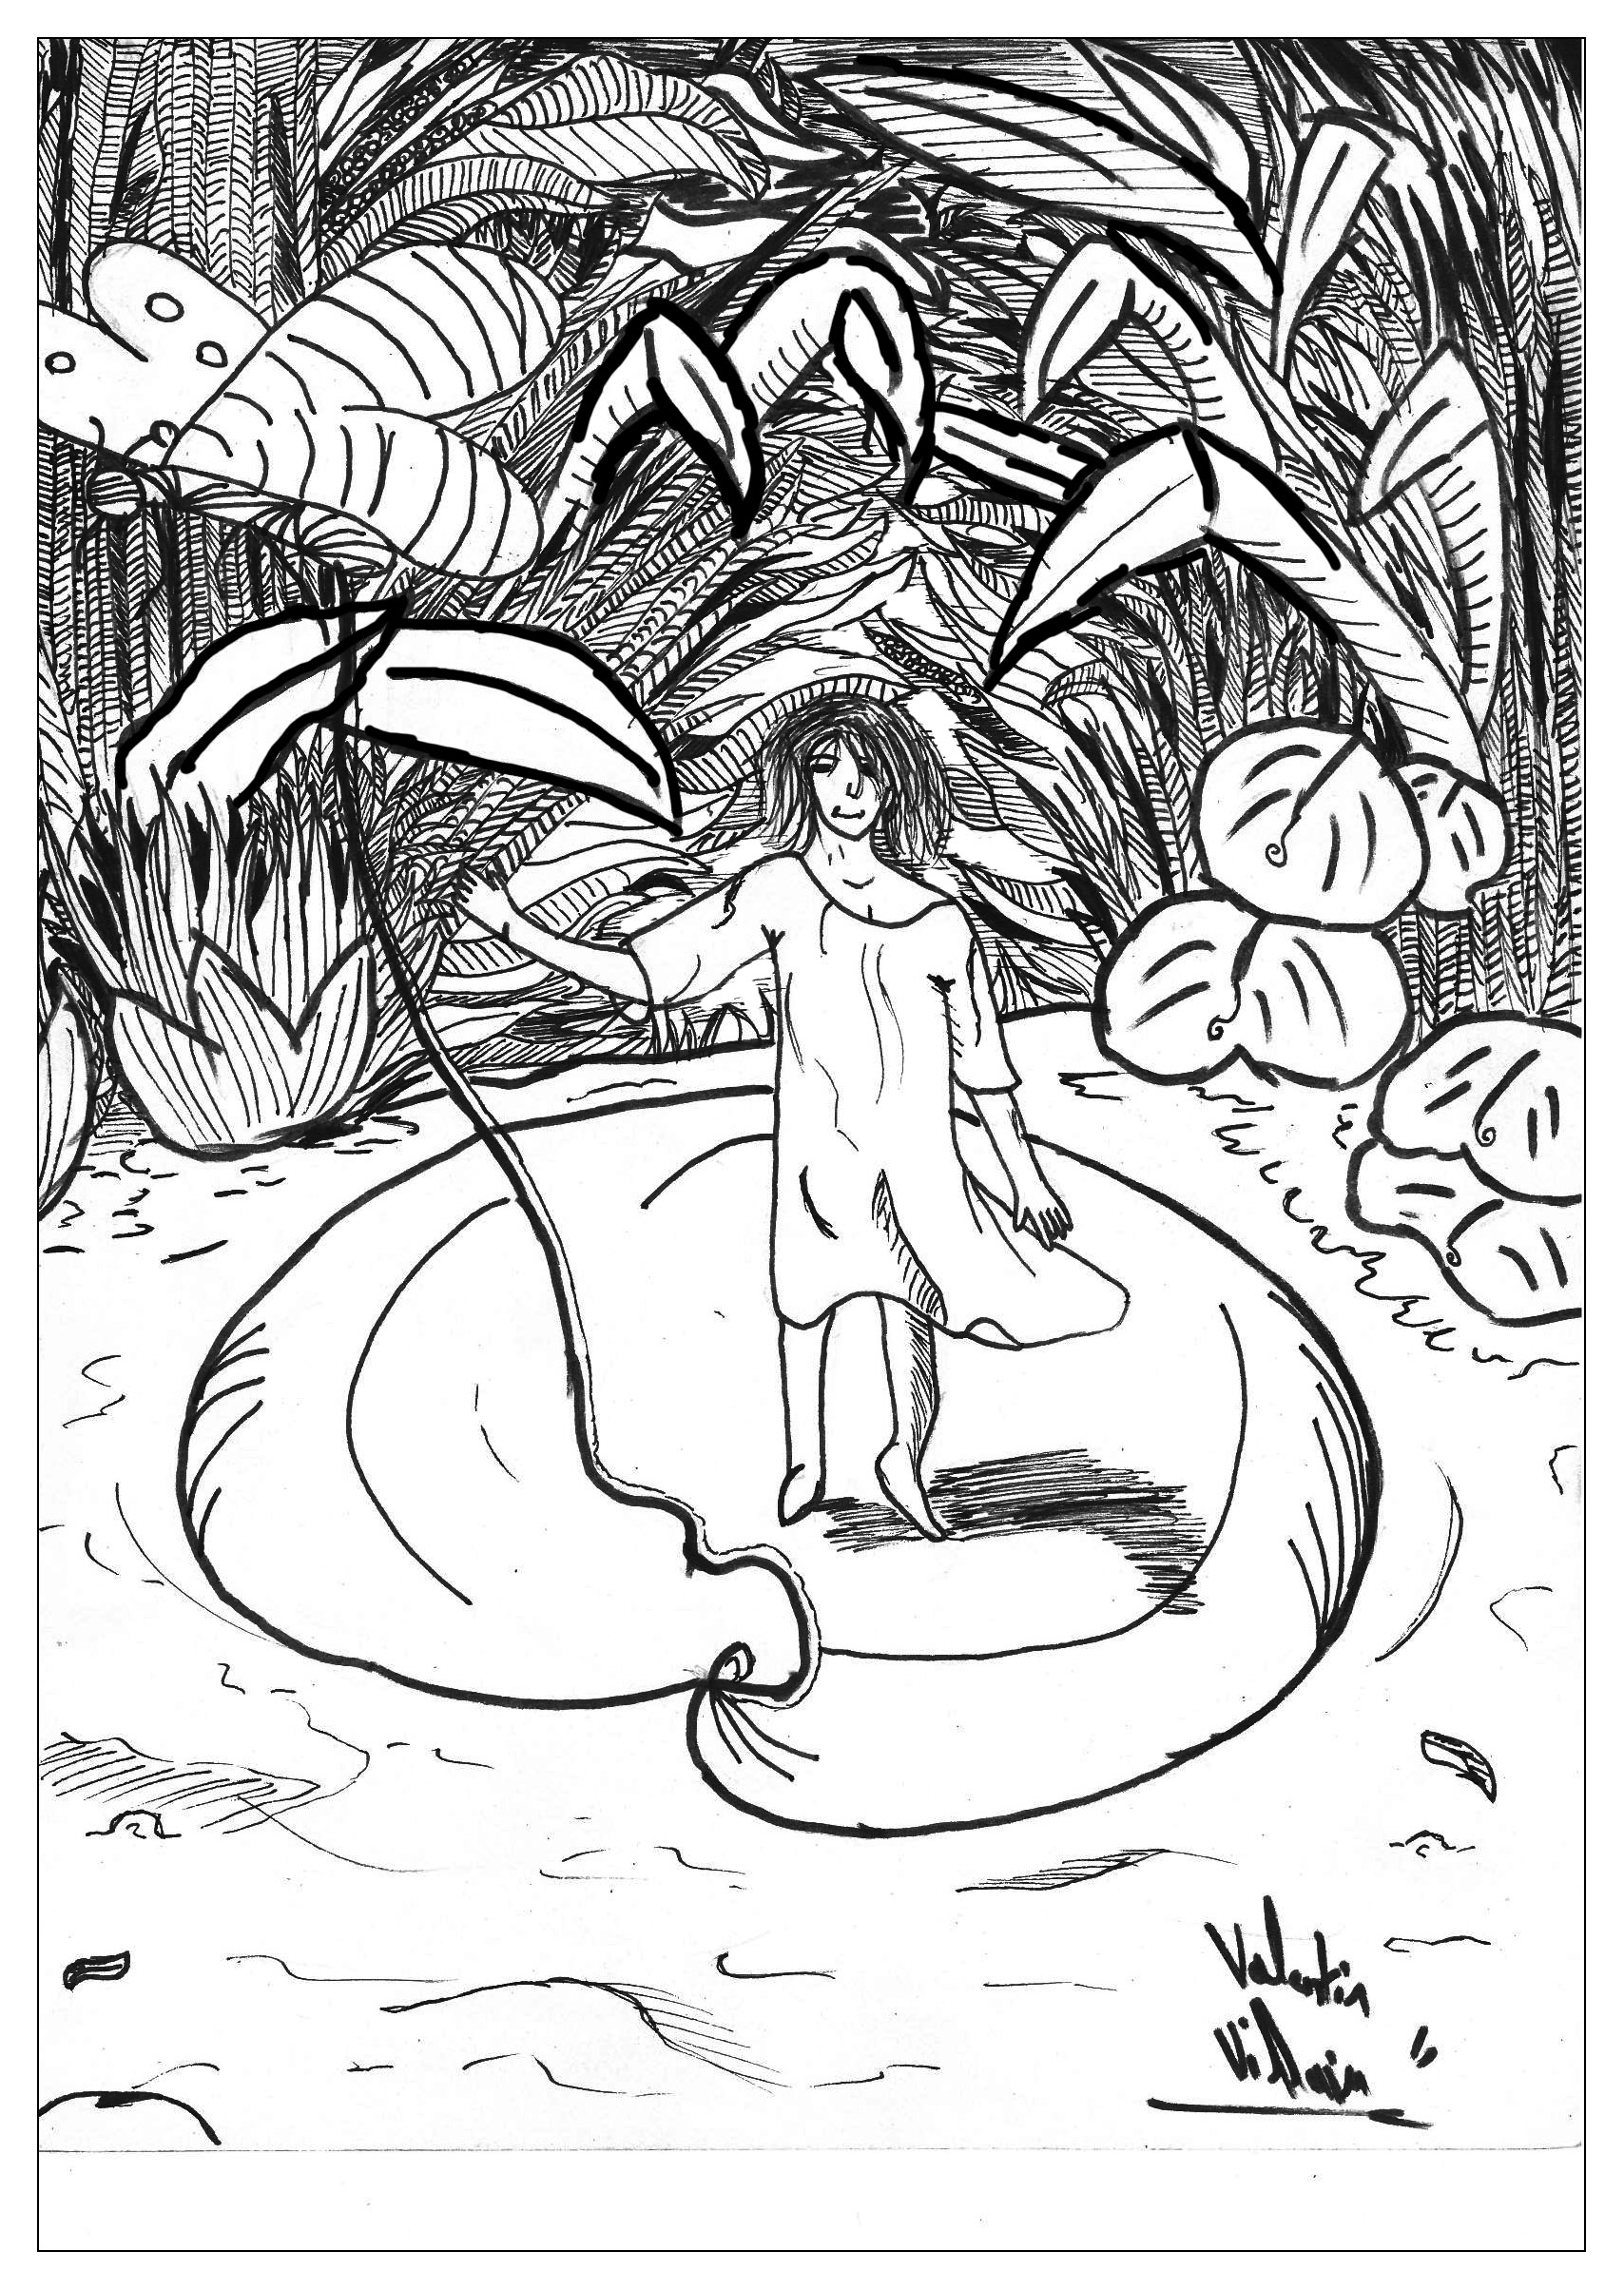 A coloring page of the Andersen tale 'Tom Thumbs'.